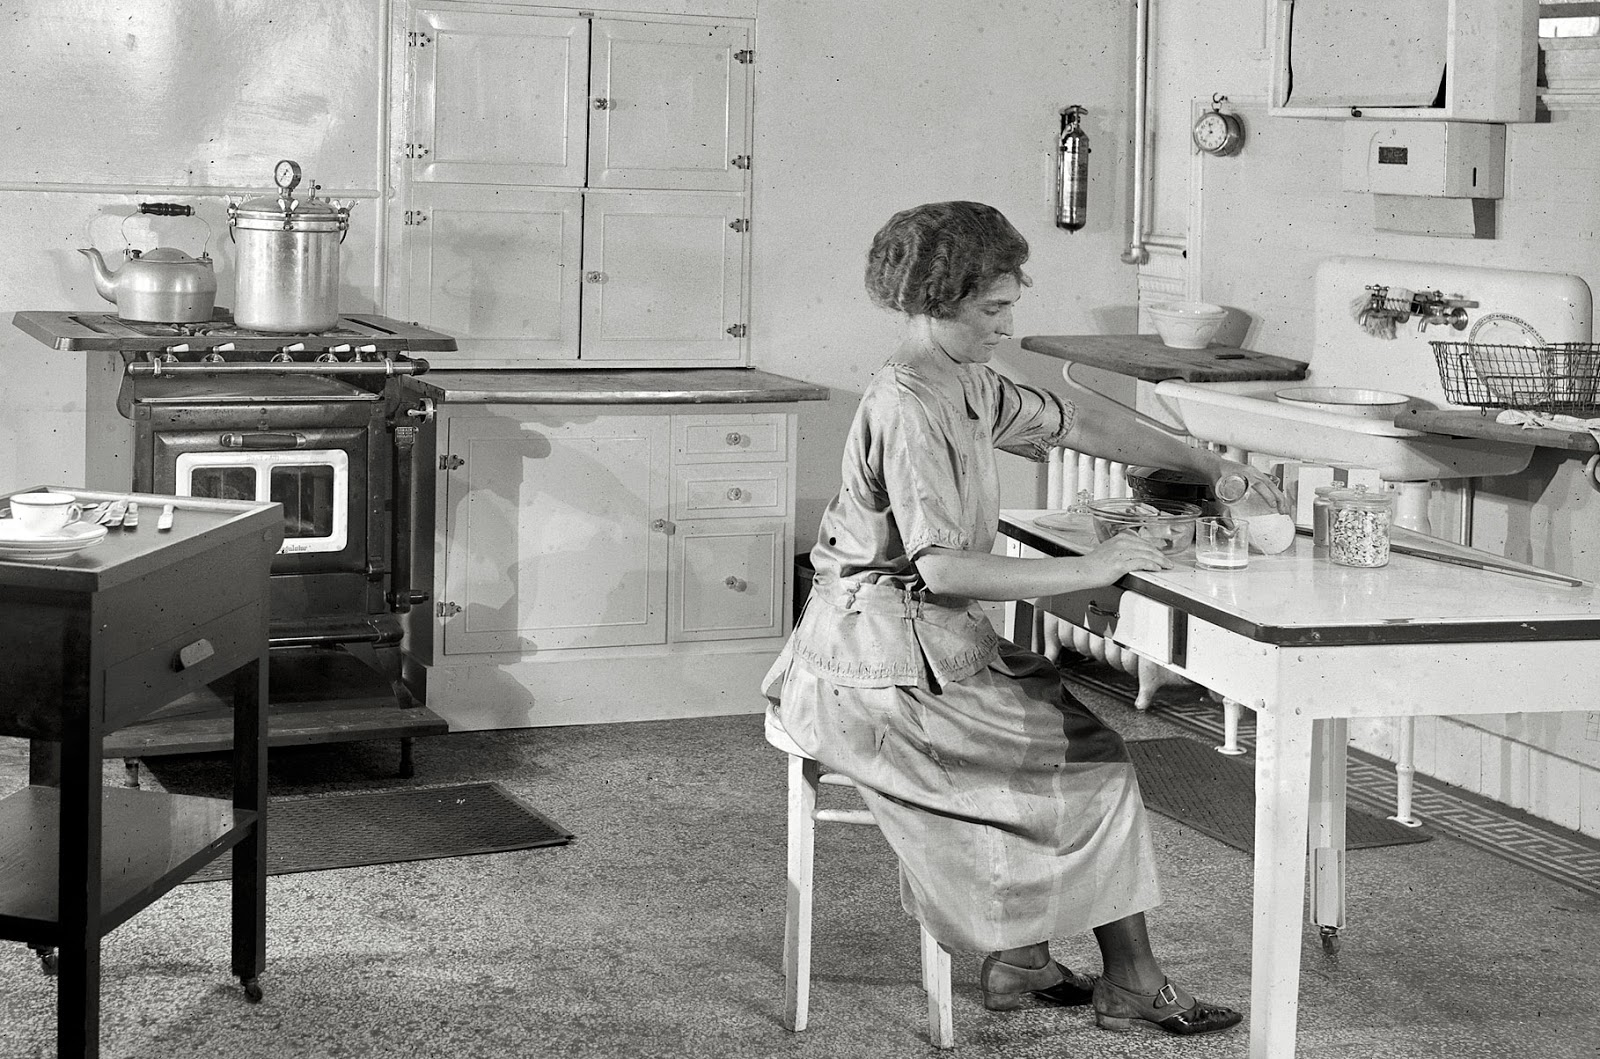 Over The Years We Lived With Facilities Of Every Vintage. Looking Back, I  Consider Each Of Those Very Different Kitchens And Baths As Laboratories.